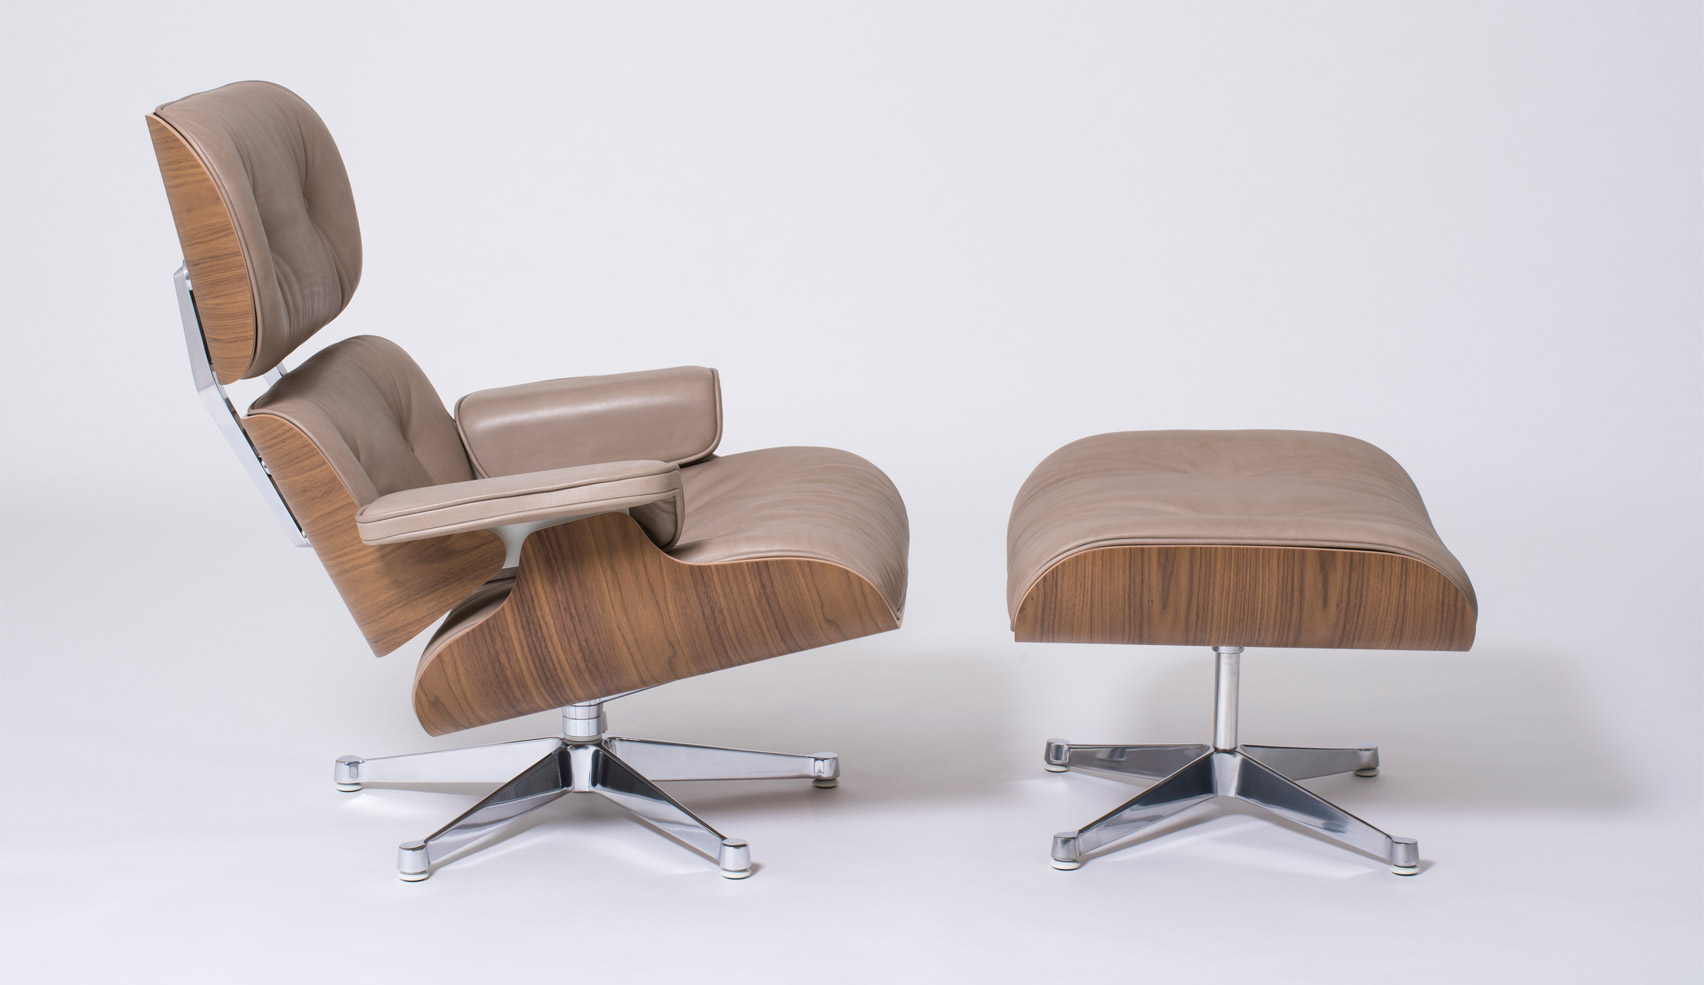 Marvelous The Conran Shop Launches Limited Edition Eames Lounge Chair Machost Co Dining Chair Design Ideas Machostcouk